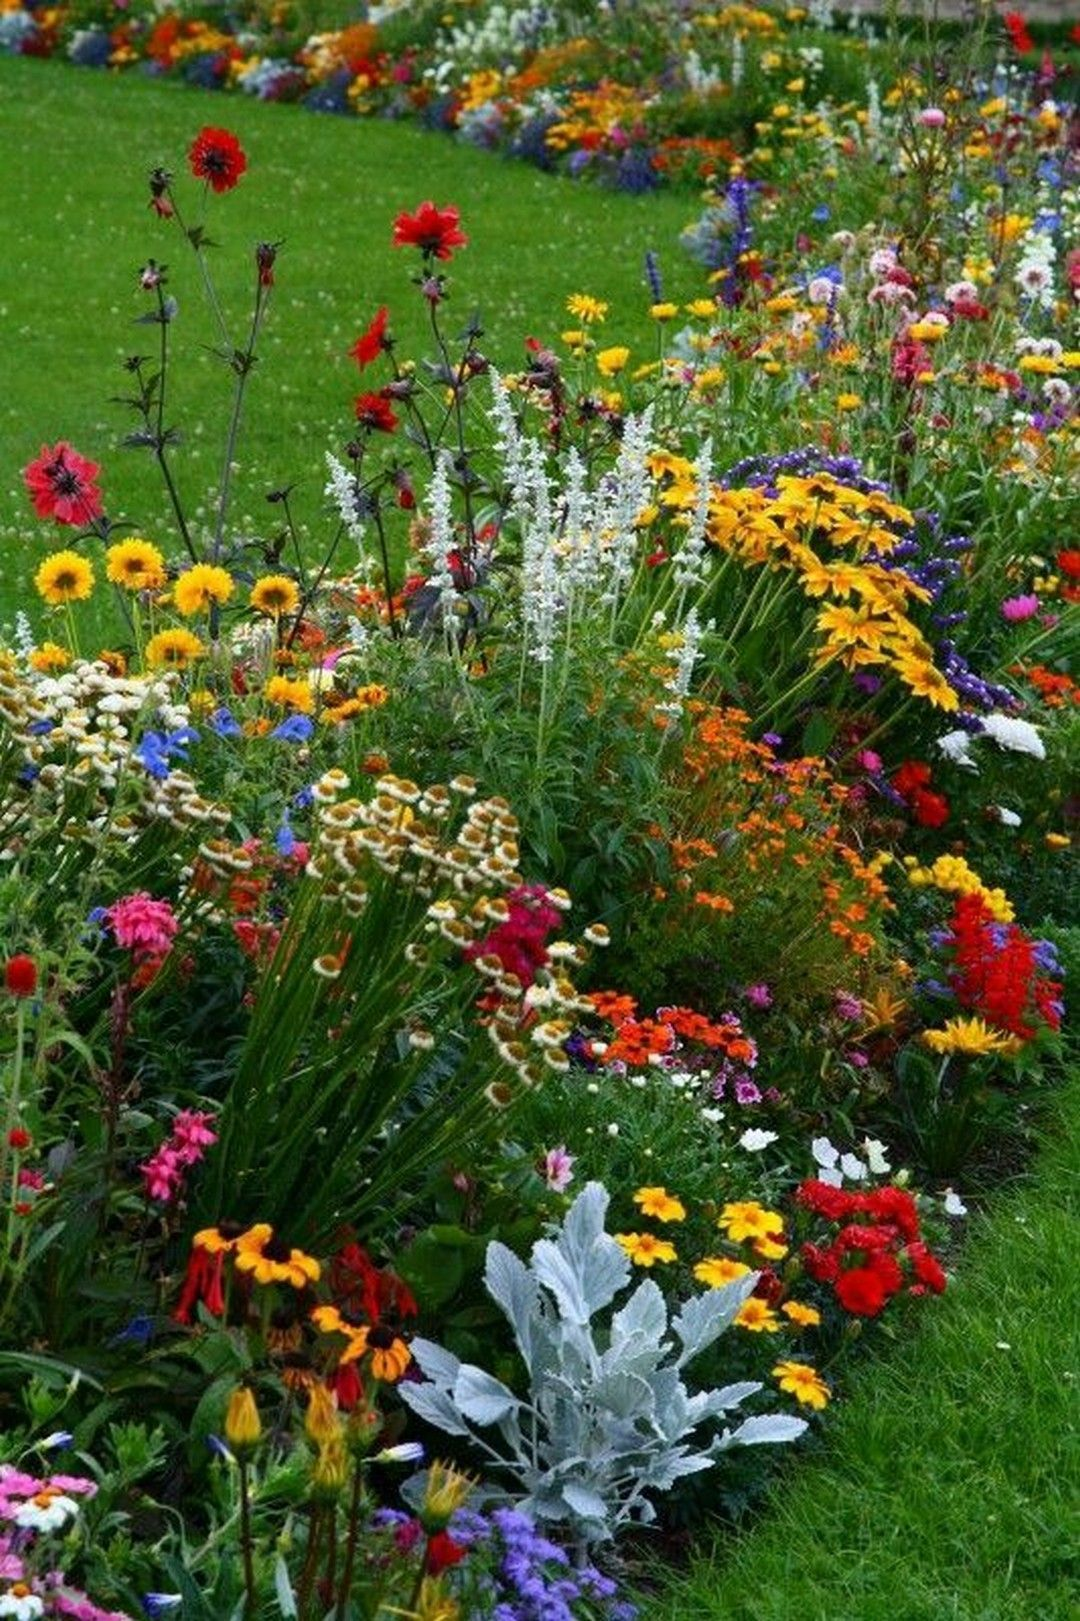 A Step By Step Guide On How To Create Beautiful Flower Gardens For Your Yard